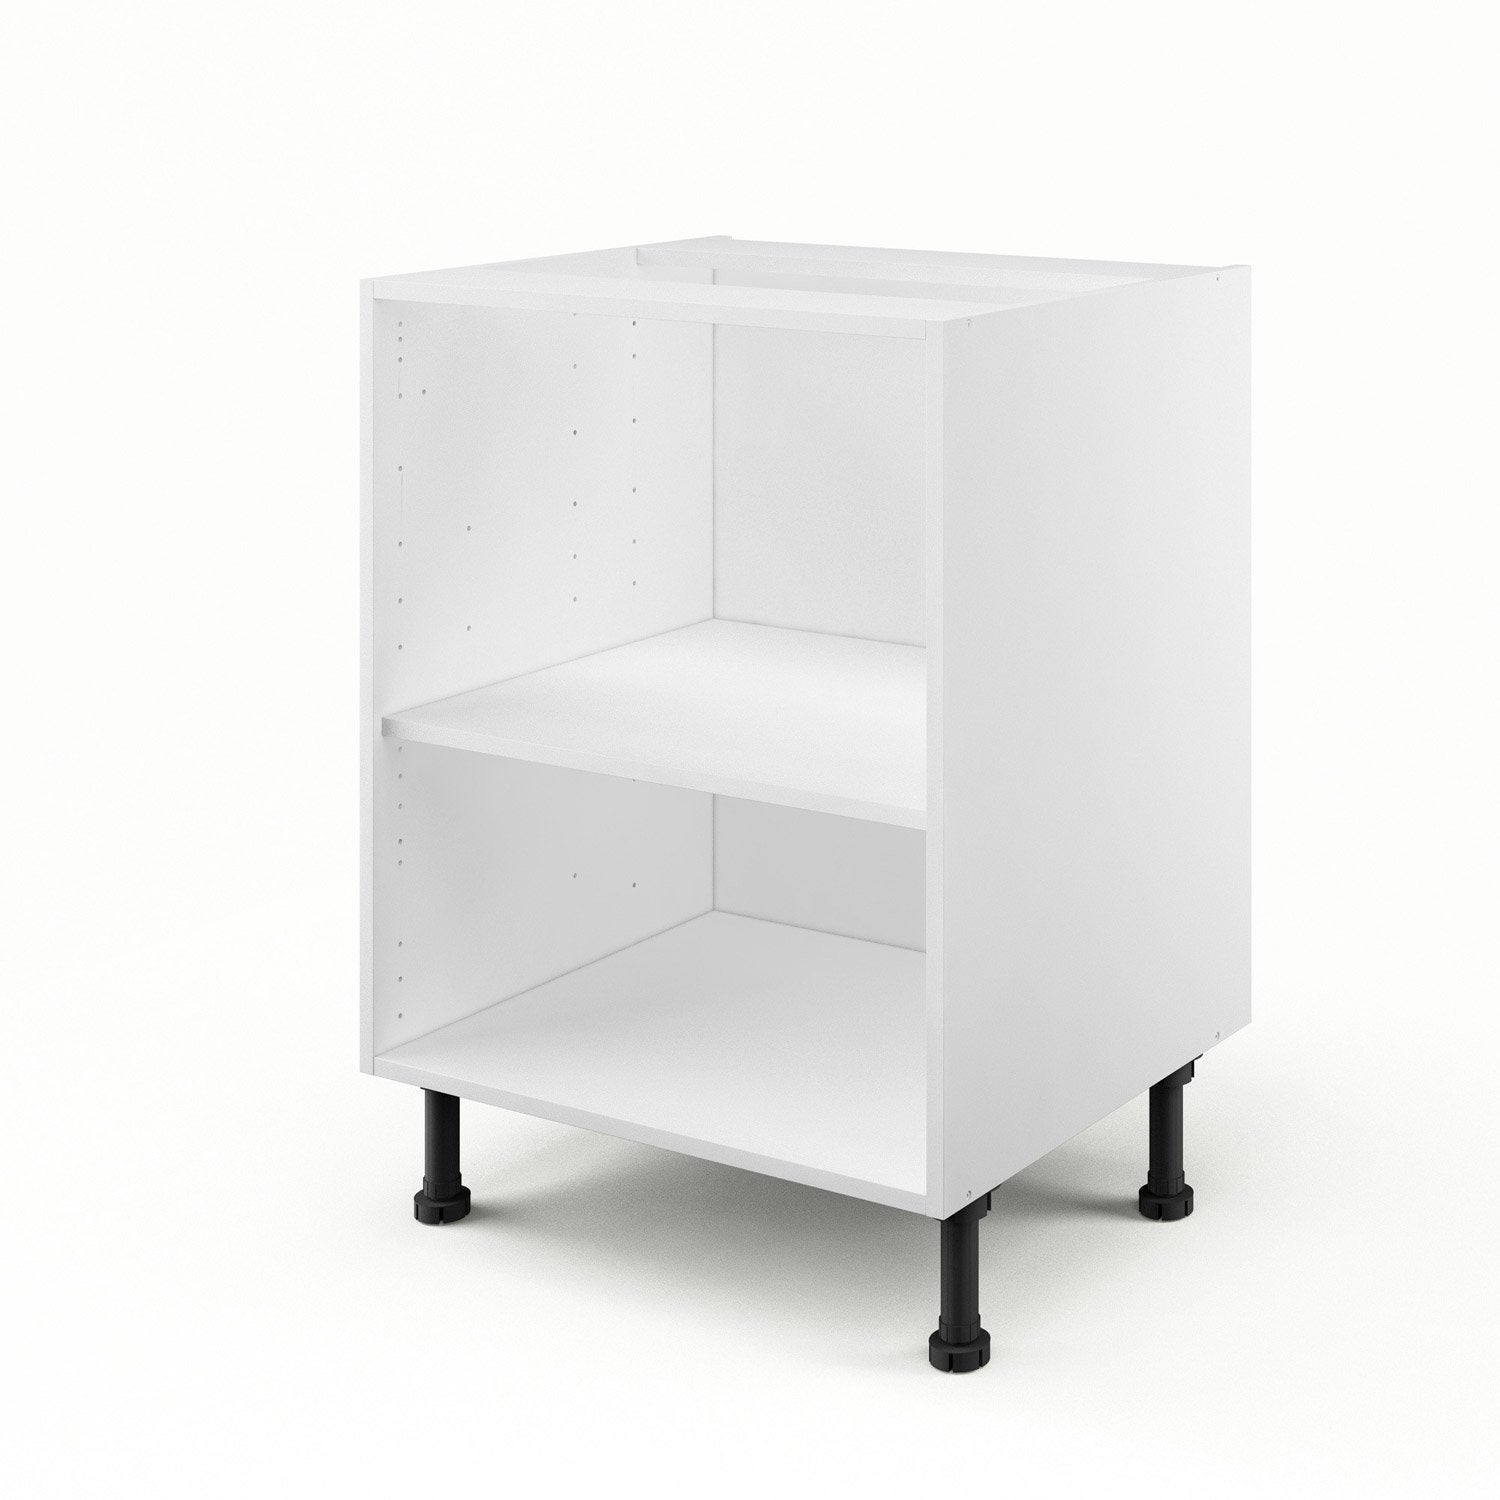 caisson de cuisine bas b60 delinia blanc x x p. Black Bedroom Furniture Sets. Home Design Ideas